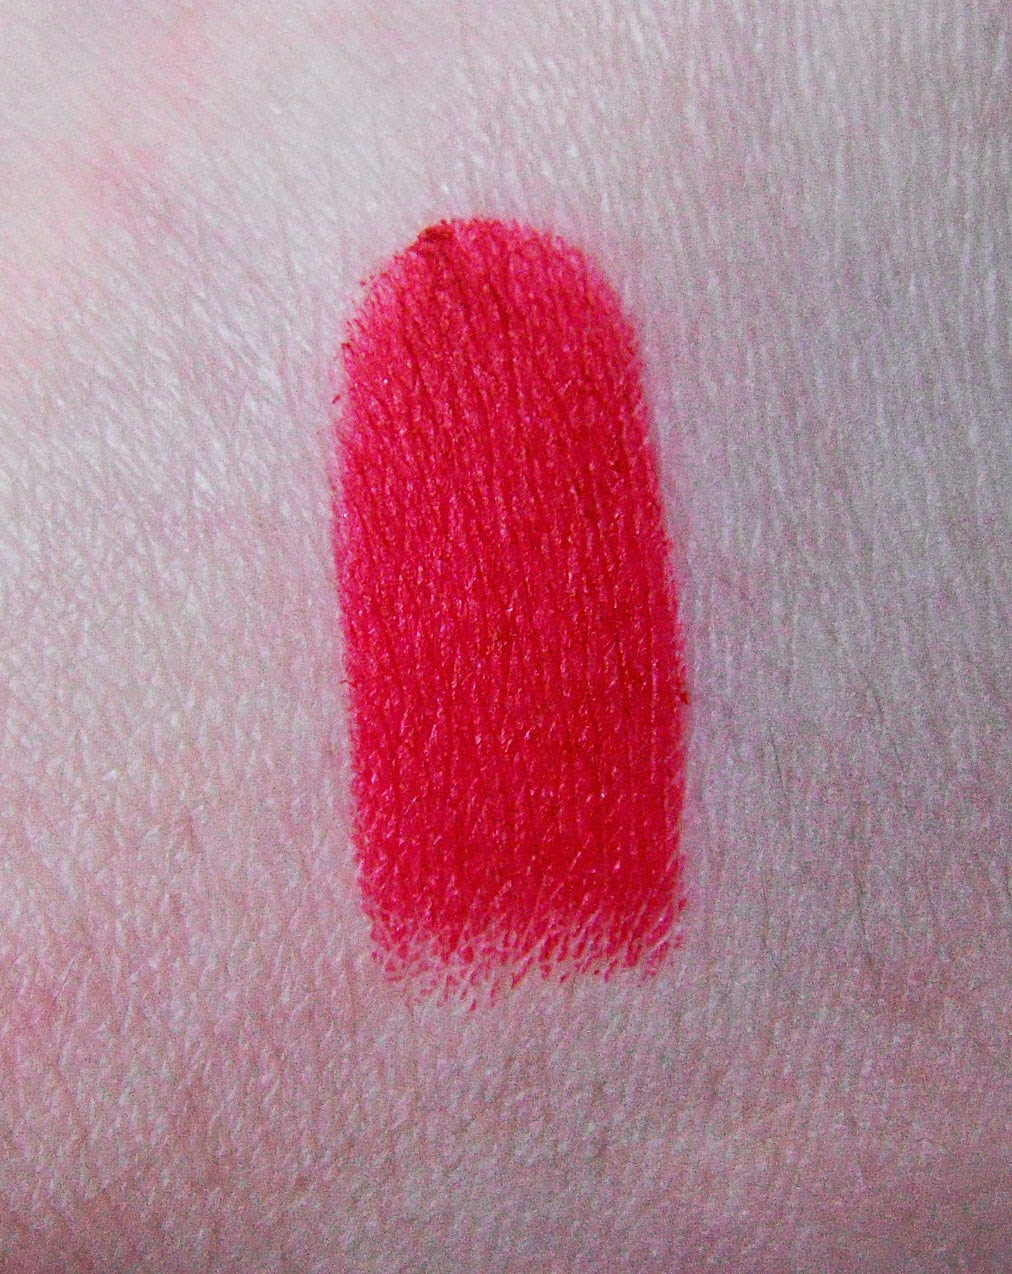 Swatch dupe Riri woo Ruby woo MAC